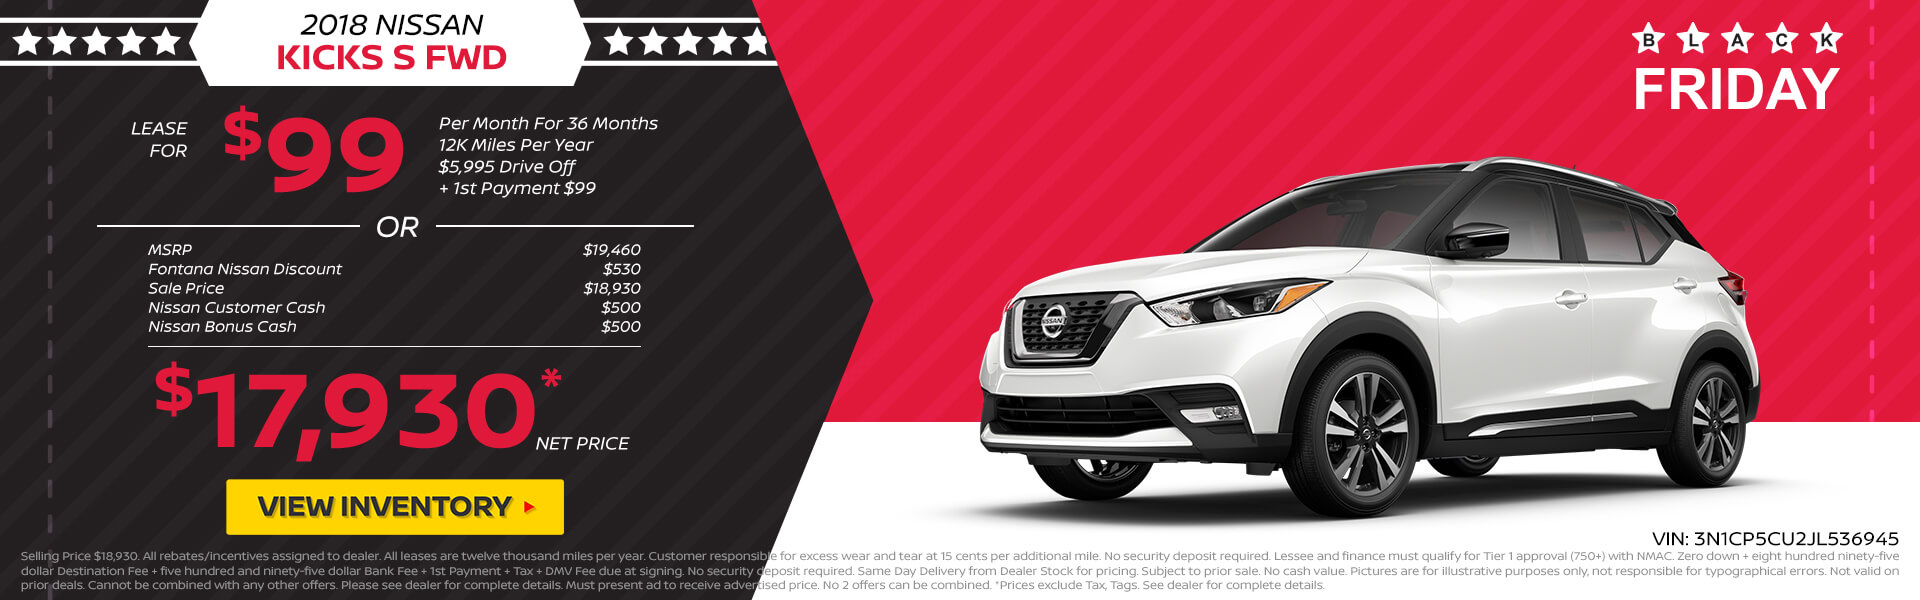 Nissan Kicks $99 Lease or $17,930 Purchase